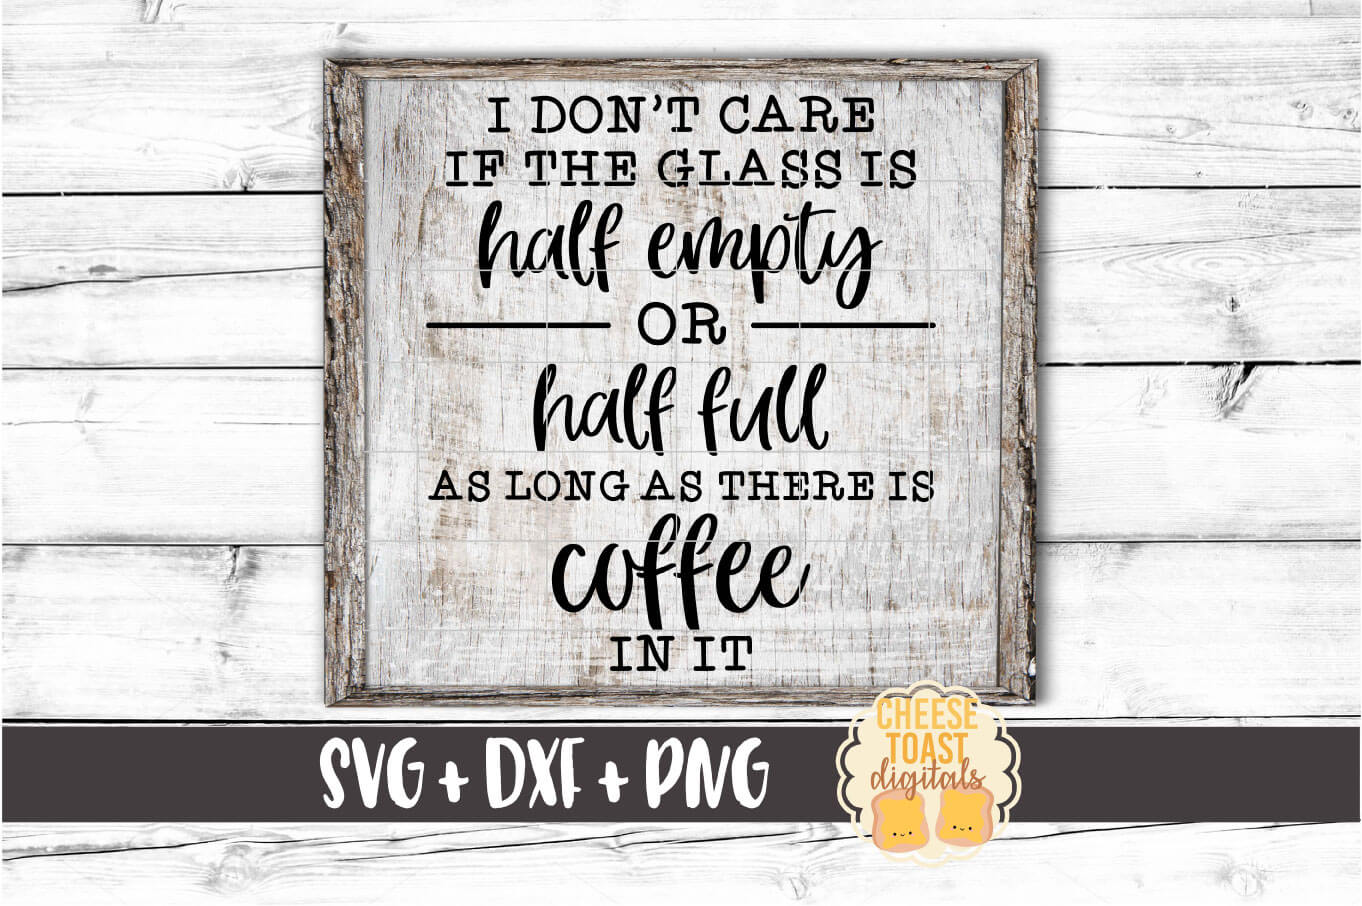 As Long As The Glass Has Coffee In It - Coffee SVG PNG DXF example image 1